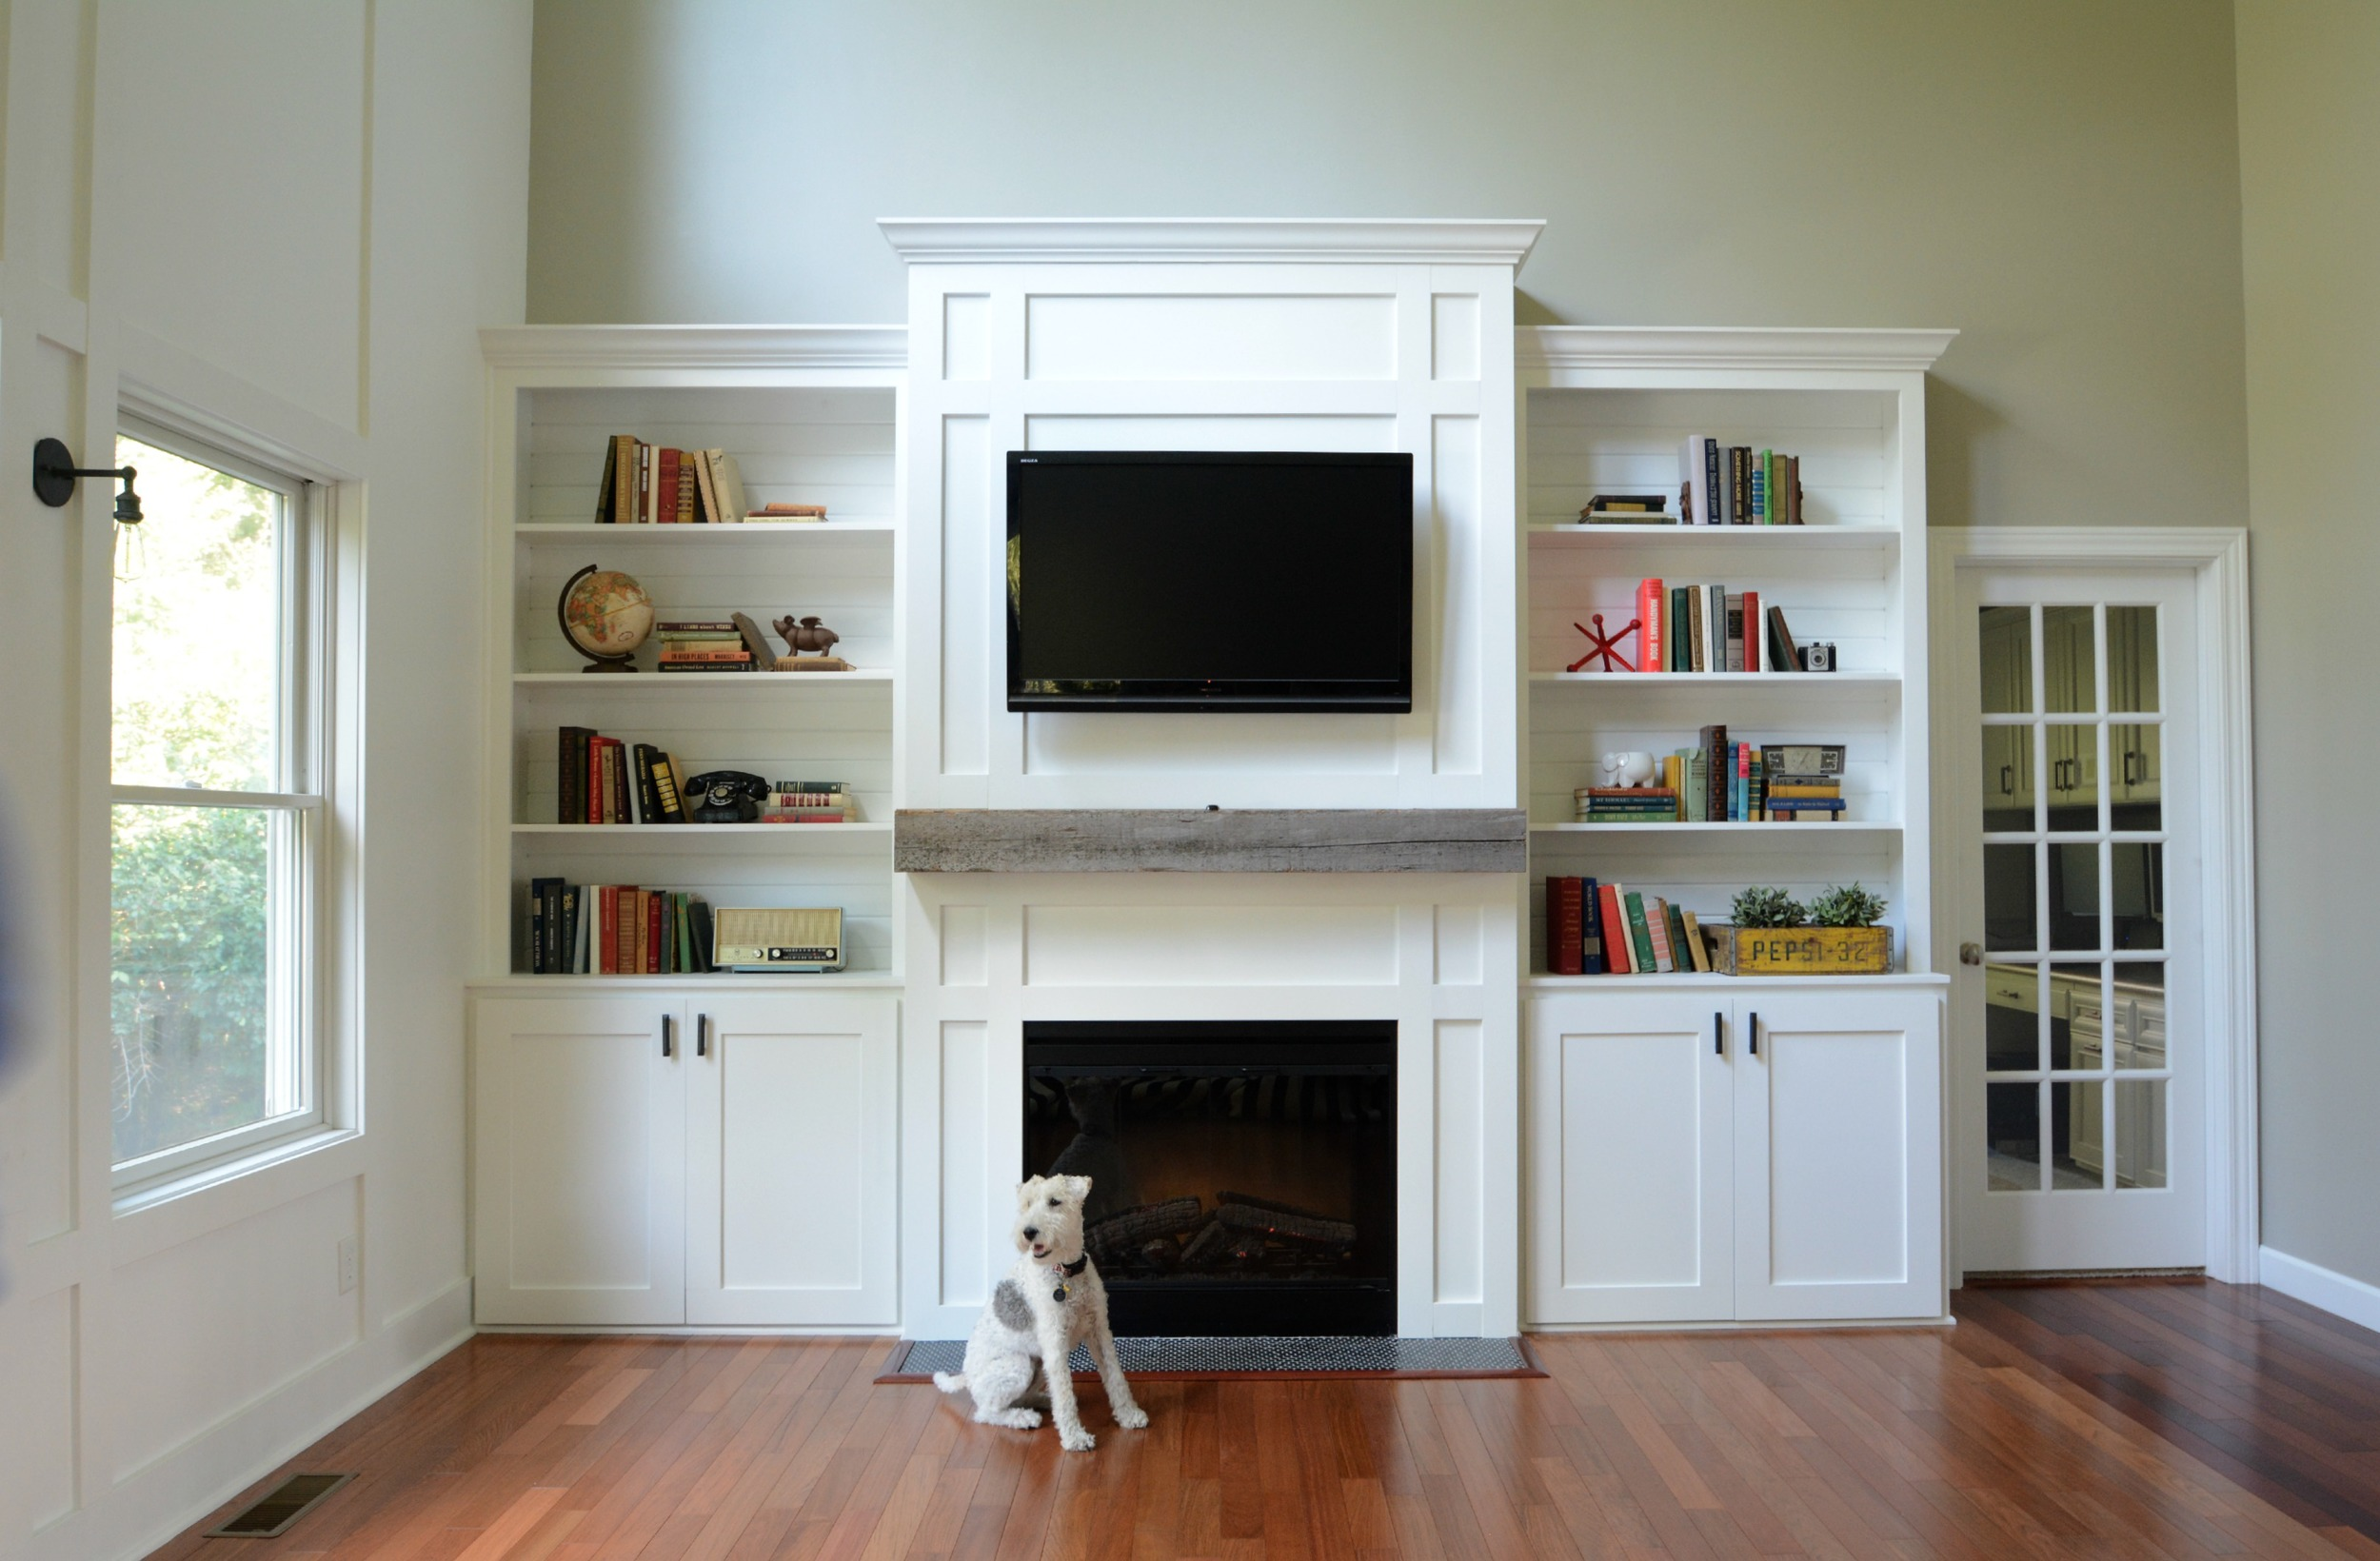 Living Room Built Ins Tutorial Cost Decor And The Dog